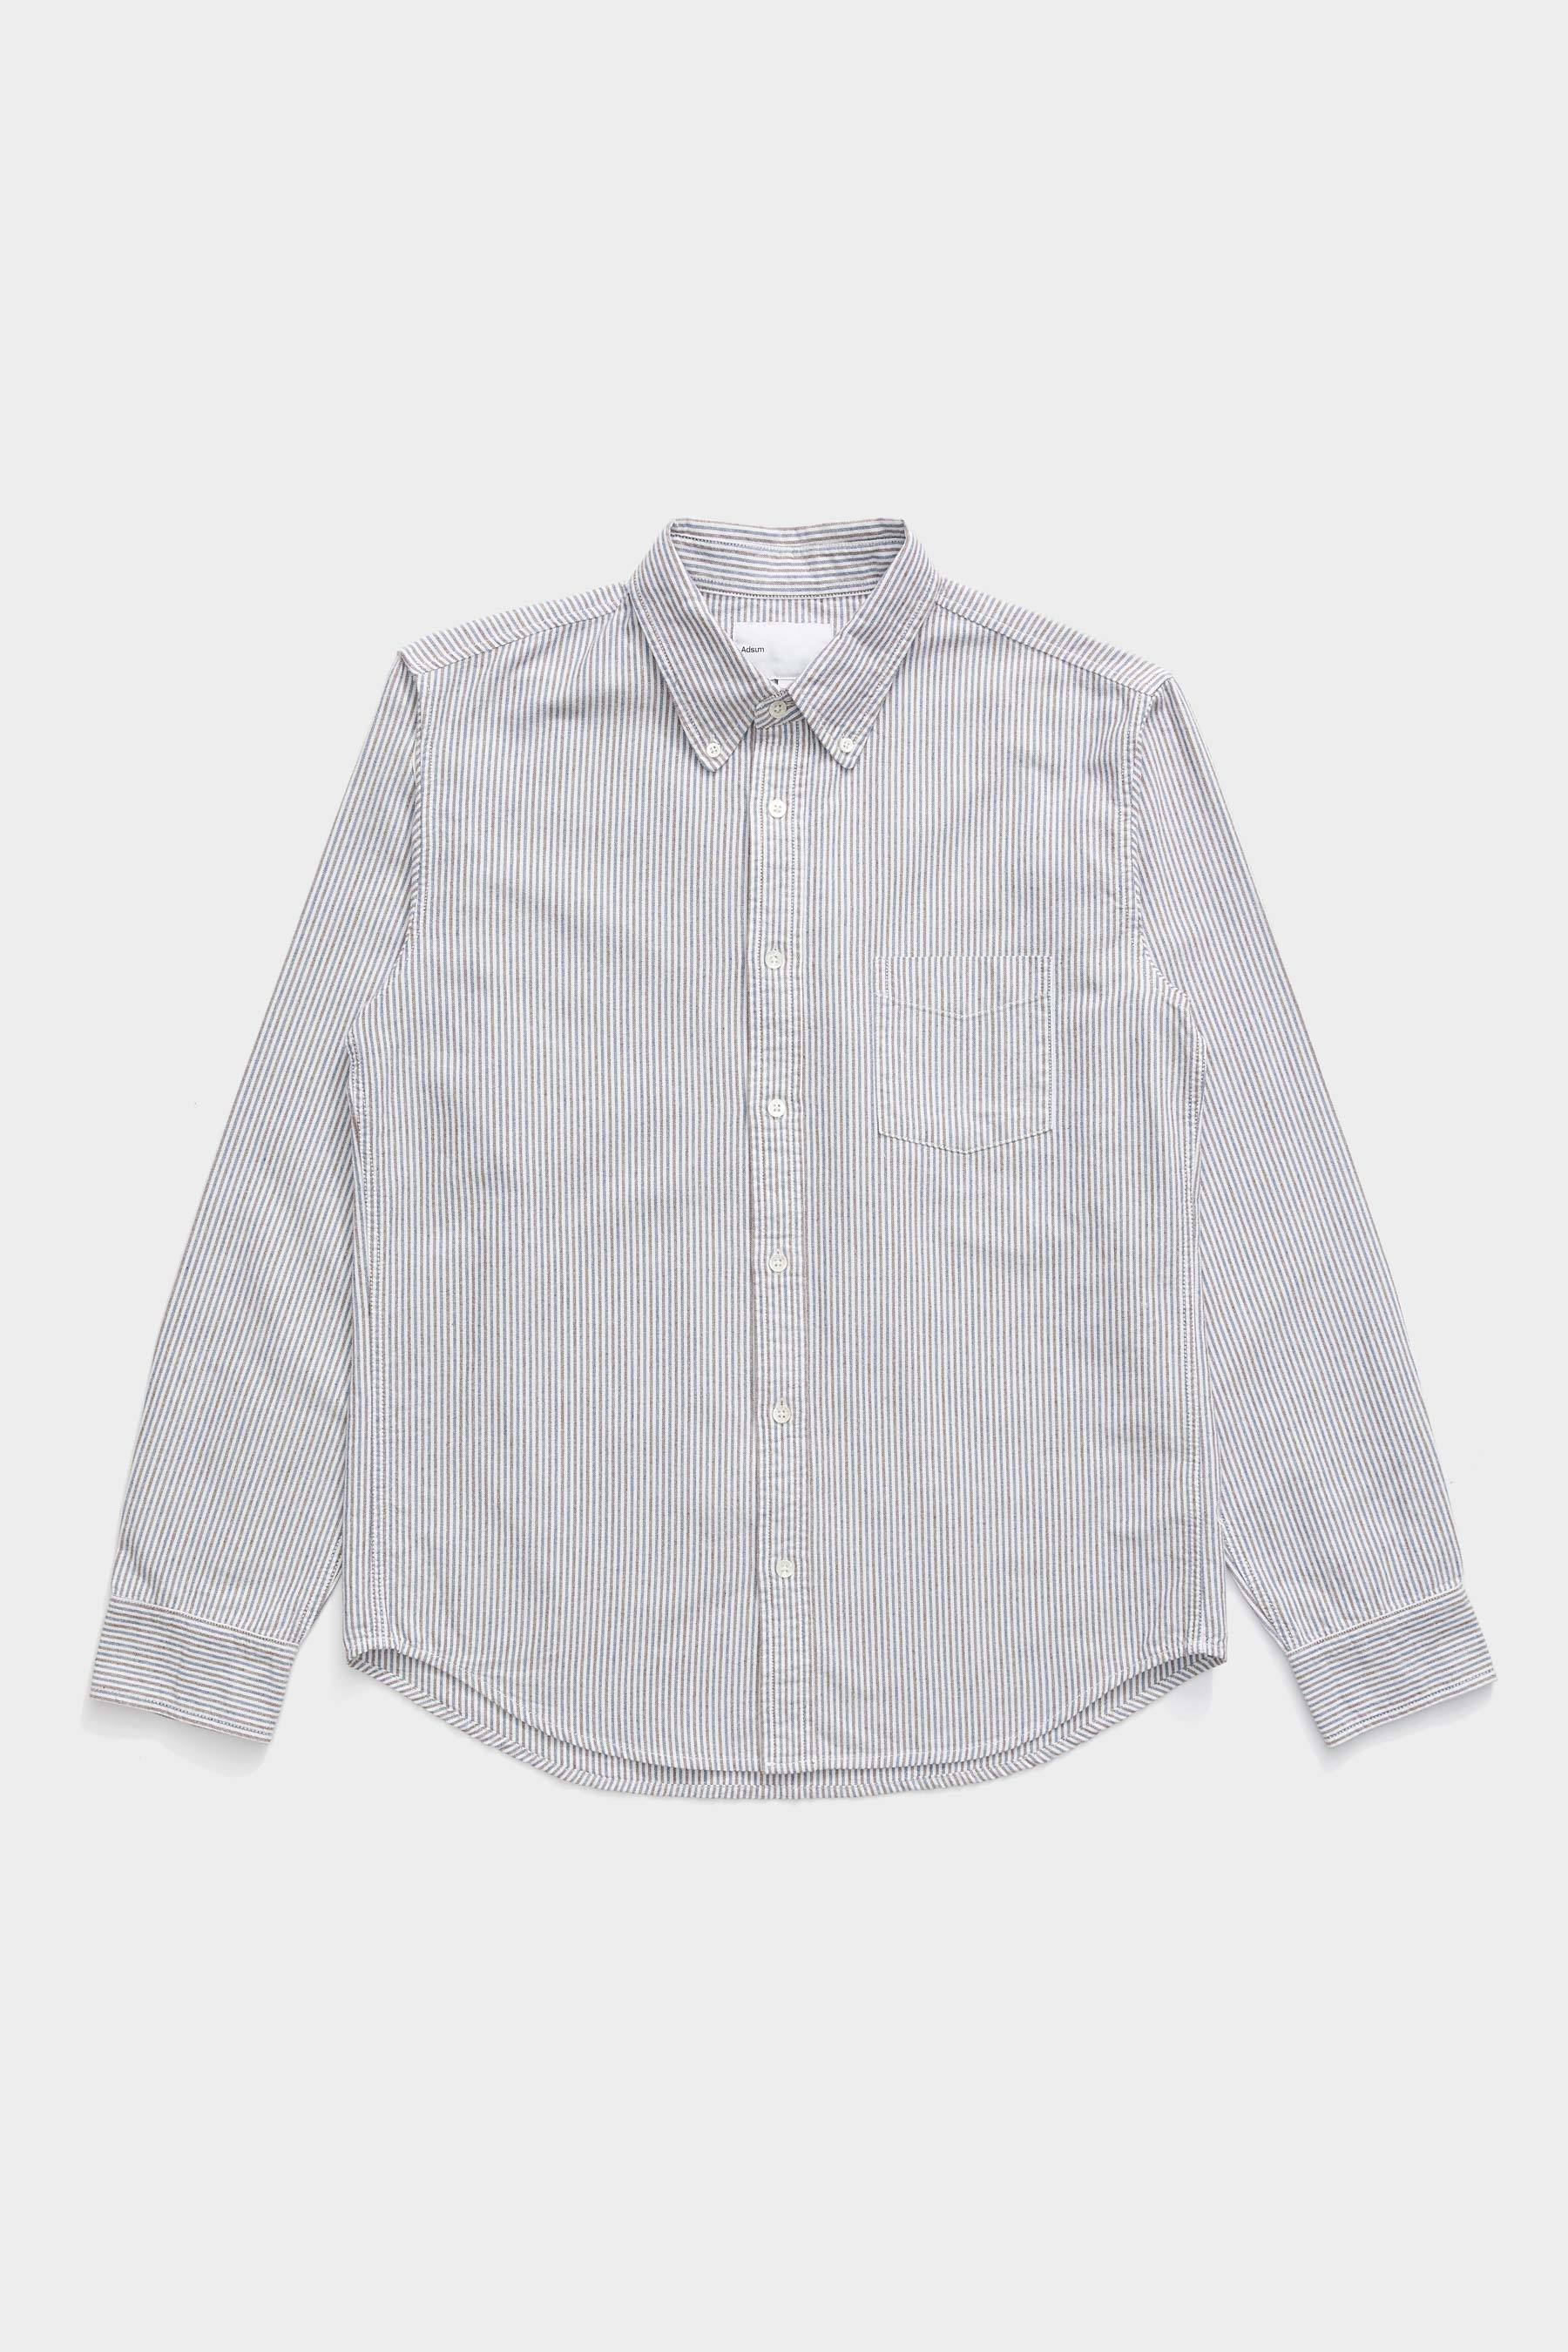 Oxford Buttondown Shirt - Navy / Brown Stripe